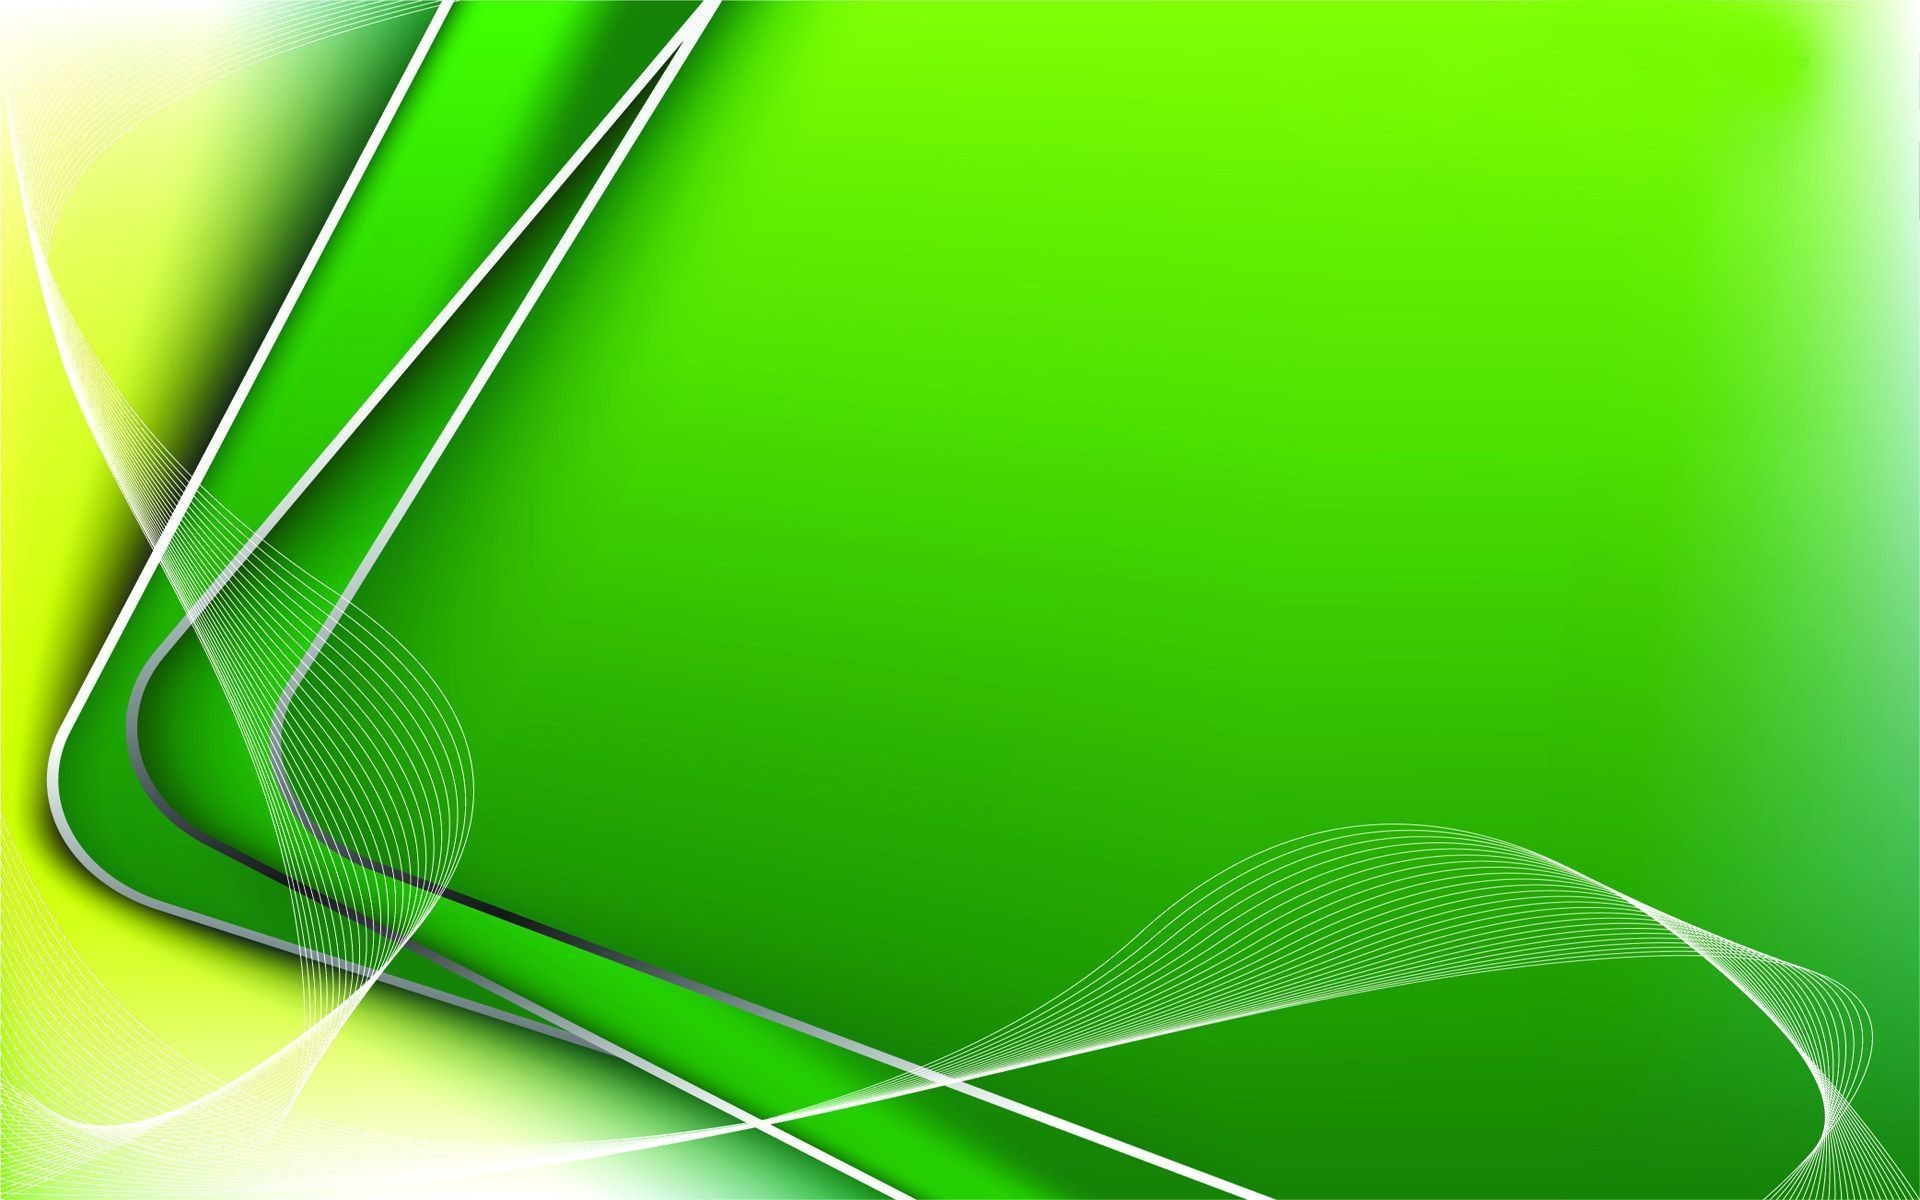 Green Abstract Background 1 Download Free Amazing HD Wallpapers